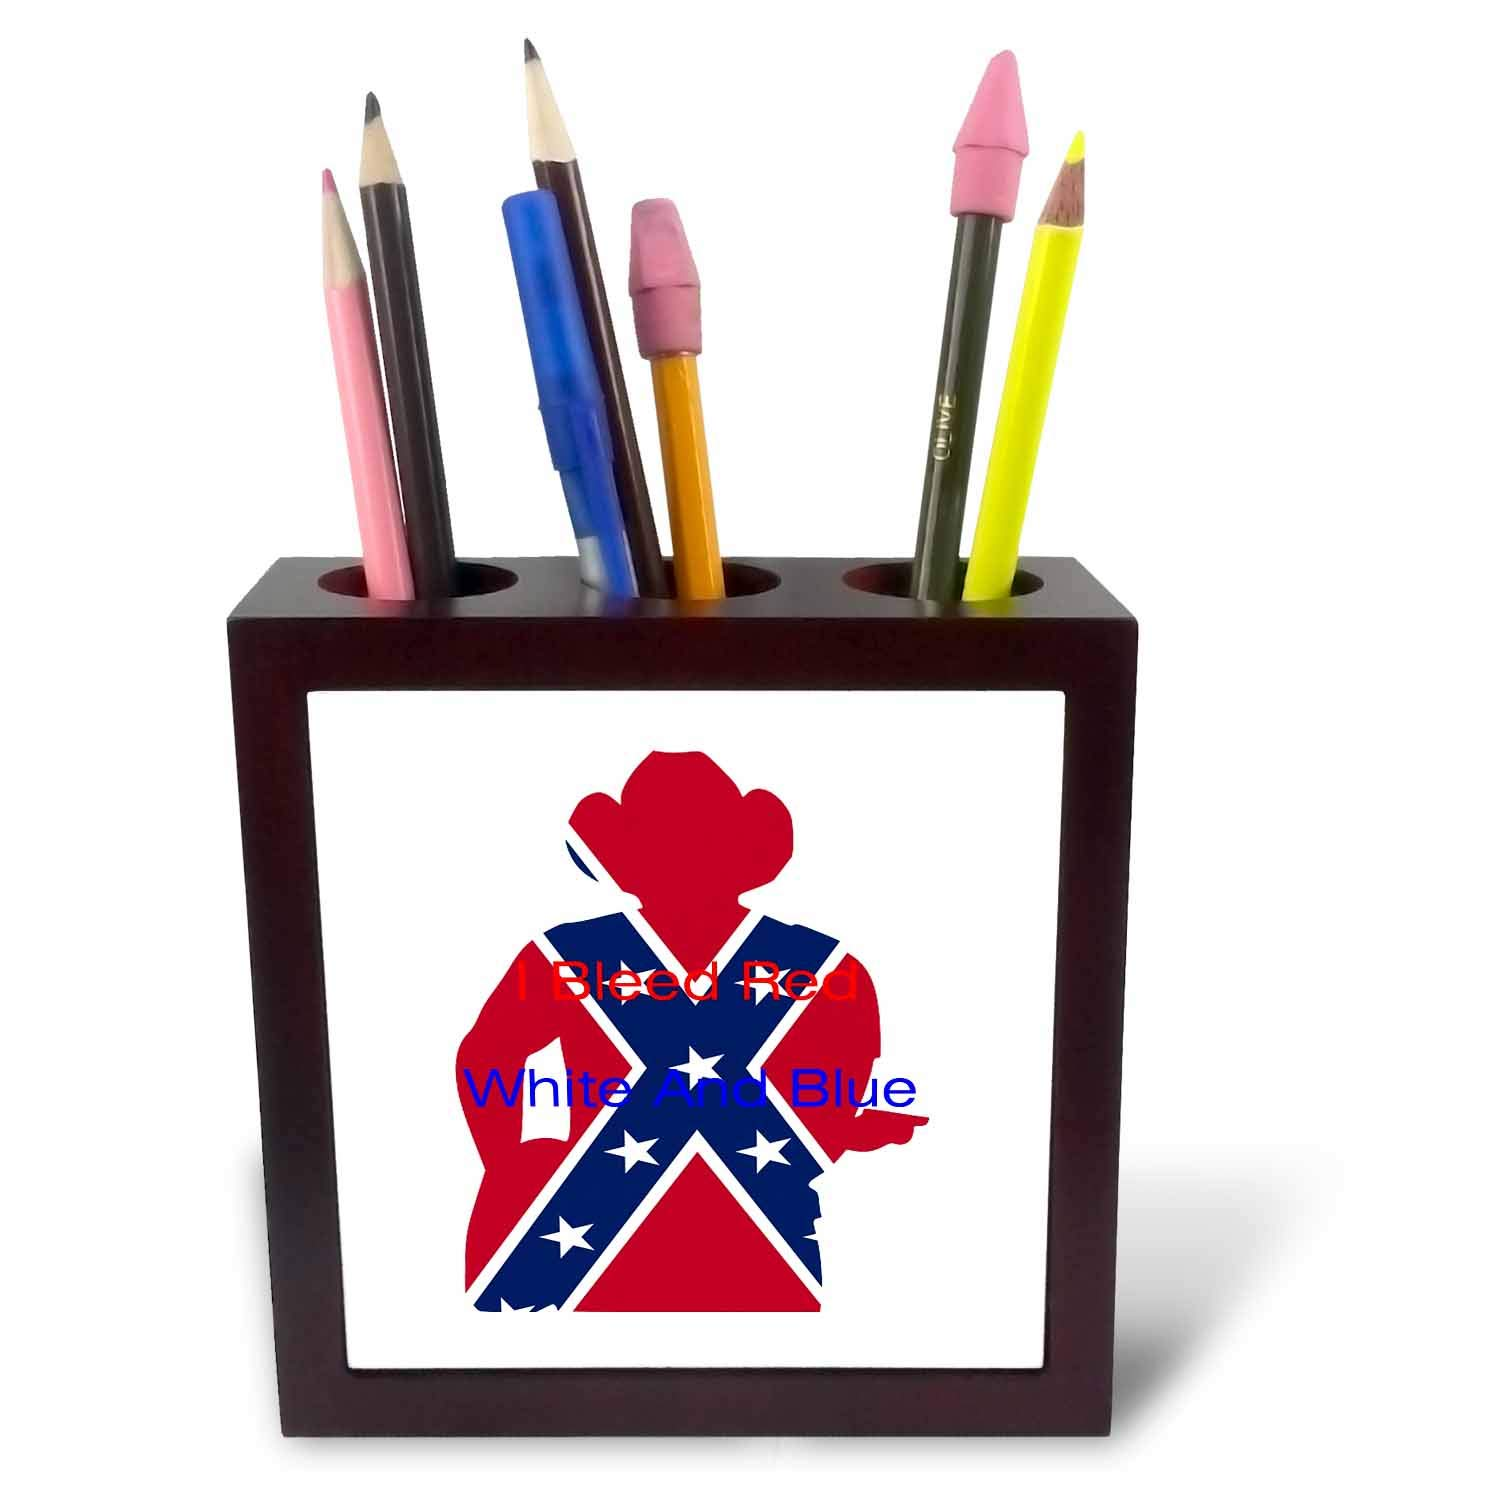 3dRose Lens Art by Florene - Patriotic - Image of Country Cowboy in Flag Colors with Message - 5 inch Tile Pen Holder (ph_291472_1)